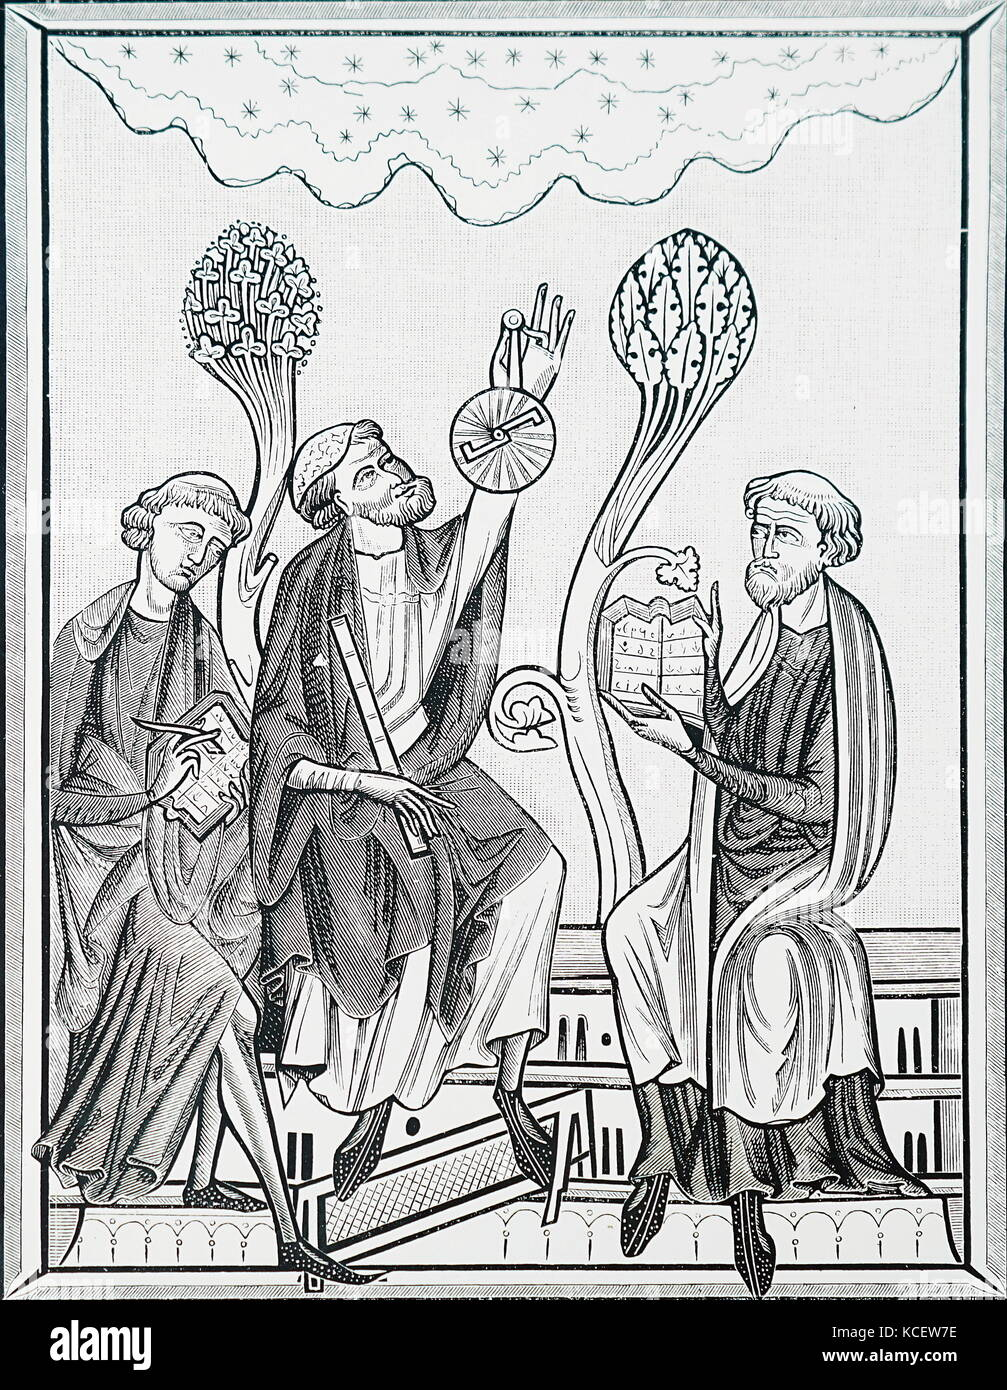 Engraving depicting an astronomy lesson using an astrolabe. Dated 13th Century - Stock Image